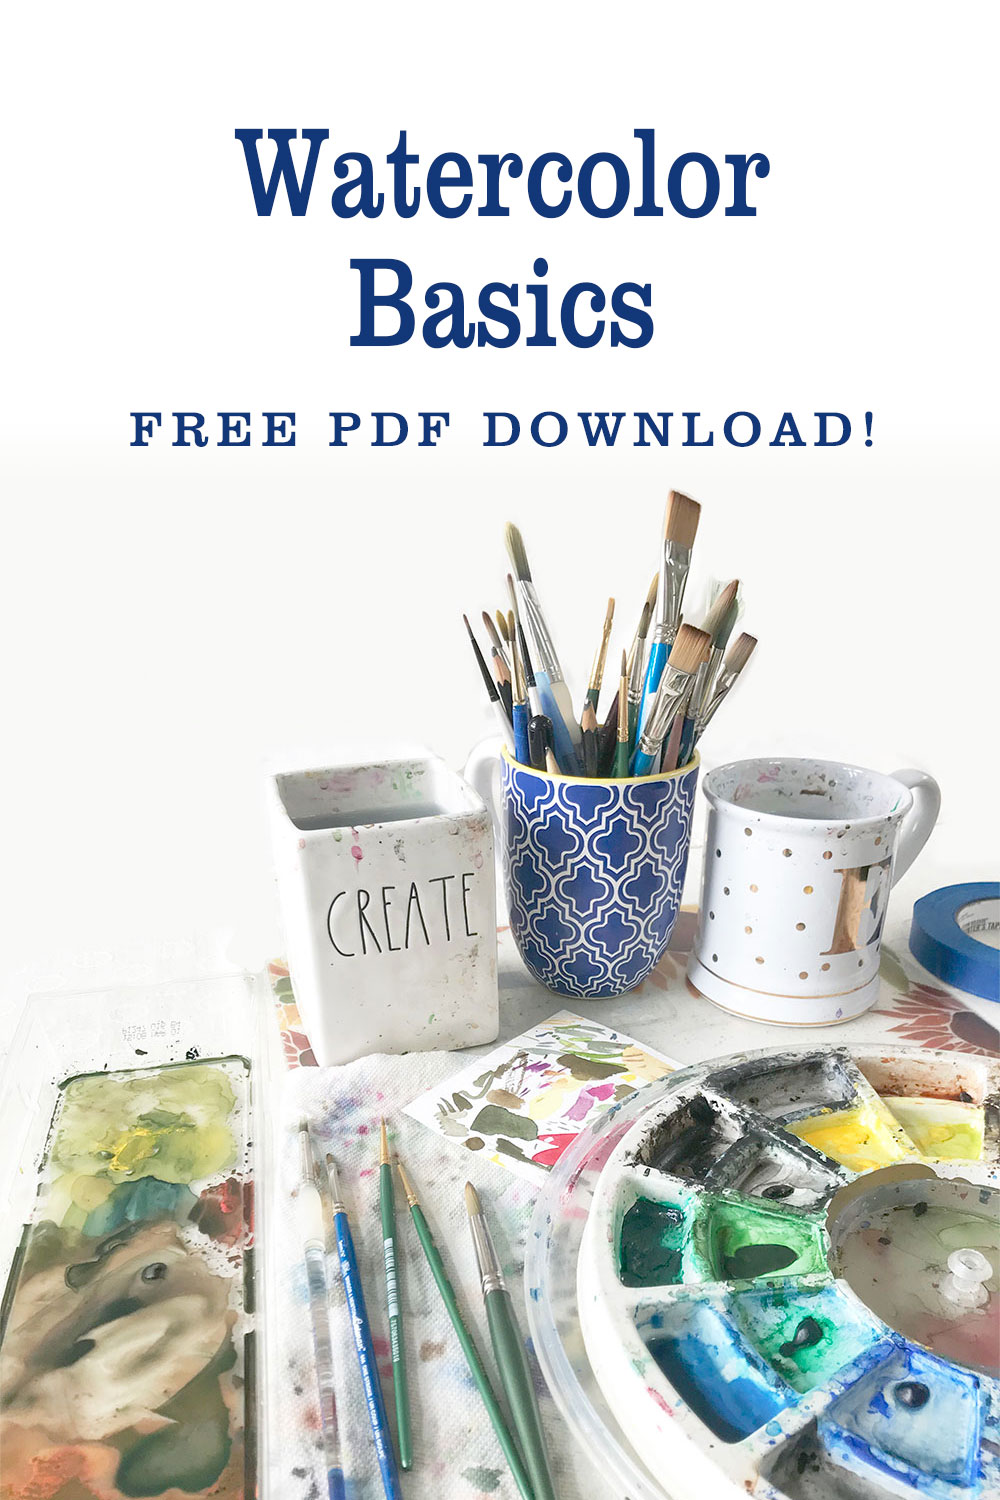 Watercolor Basics free pdf download